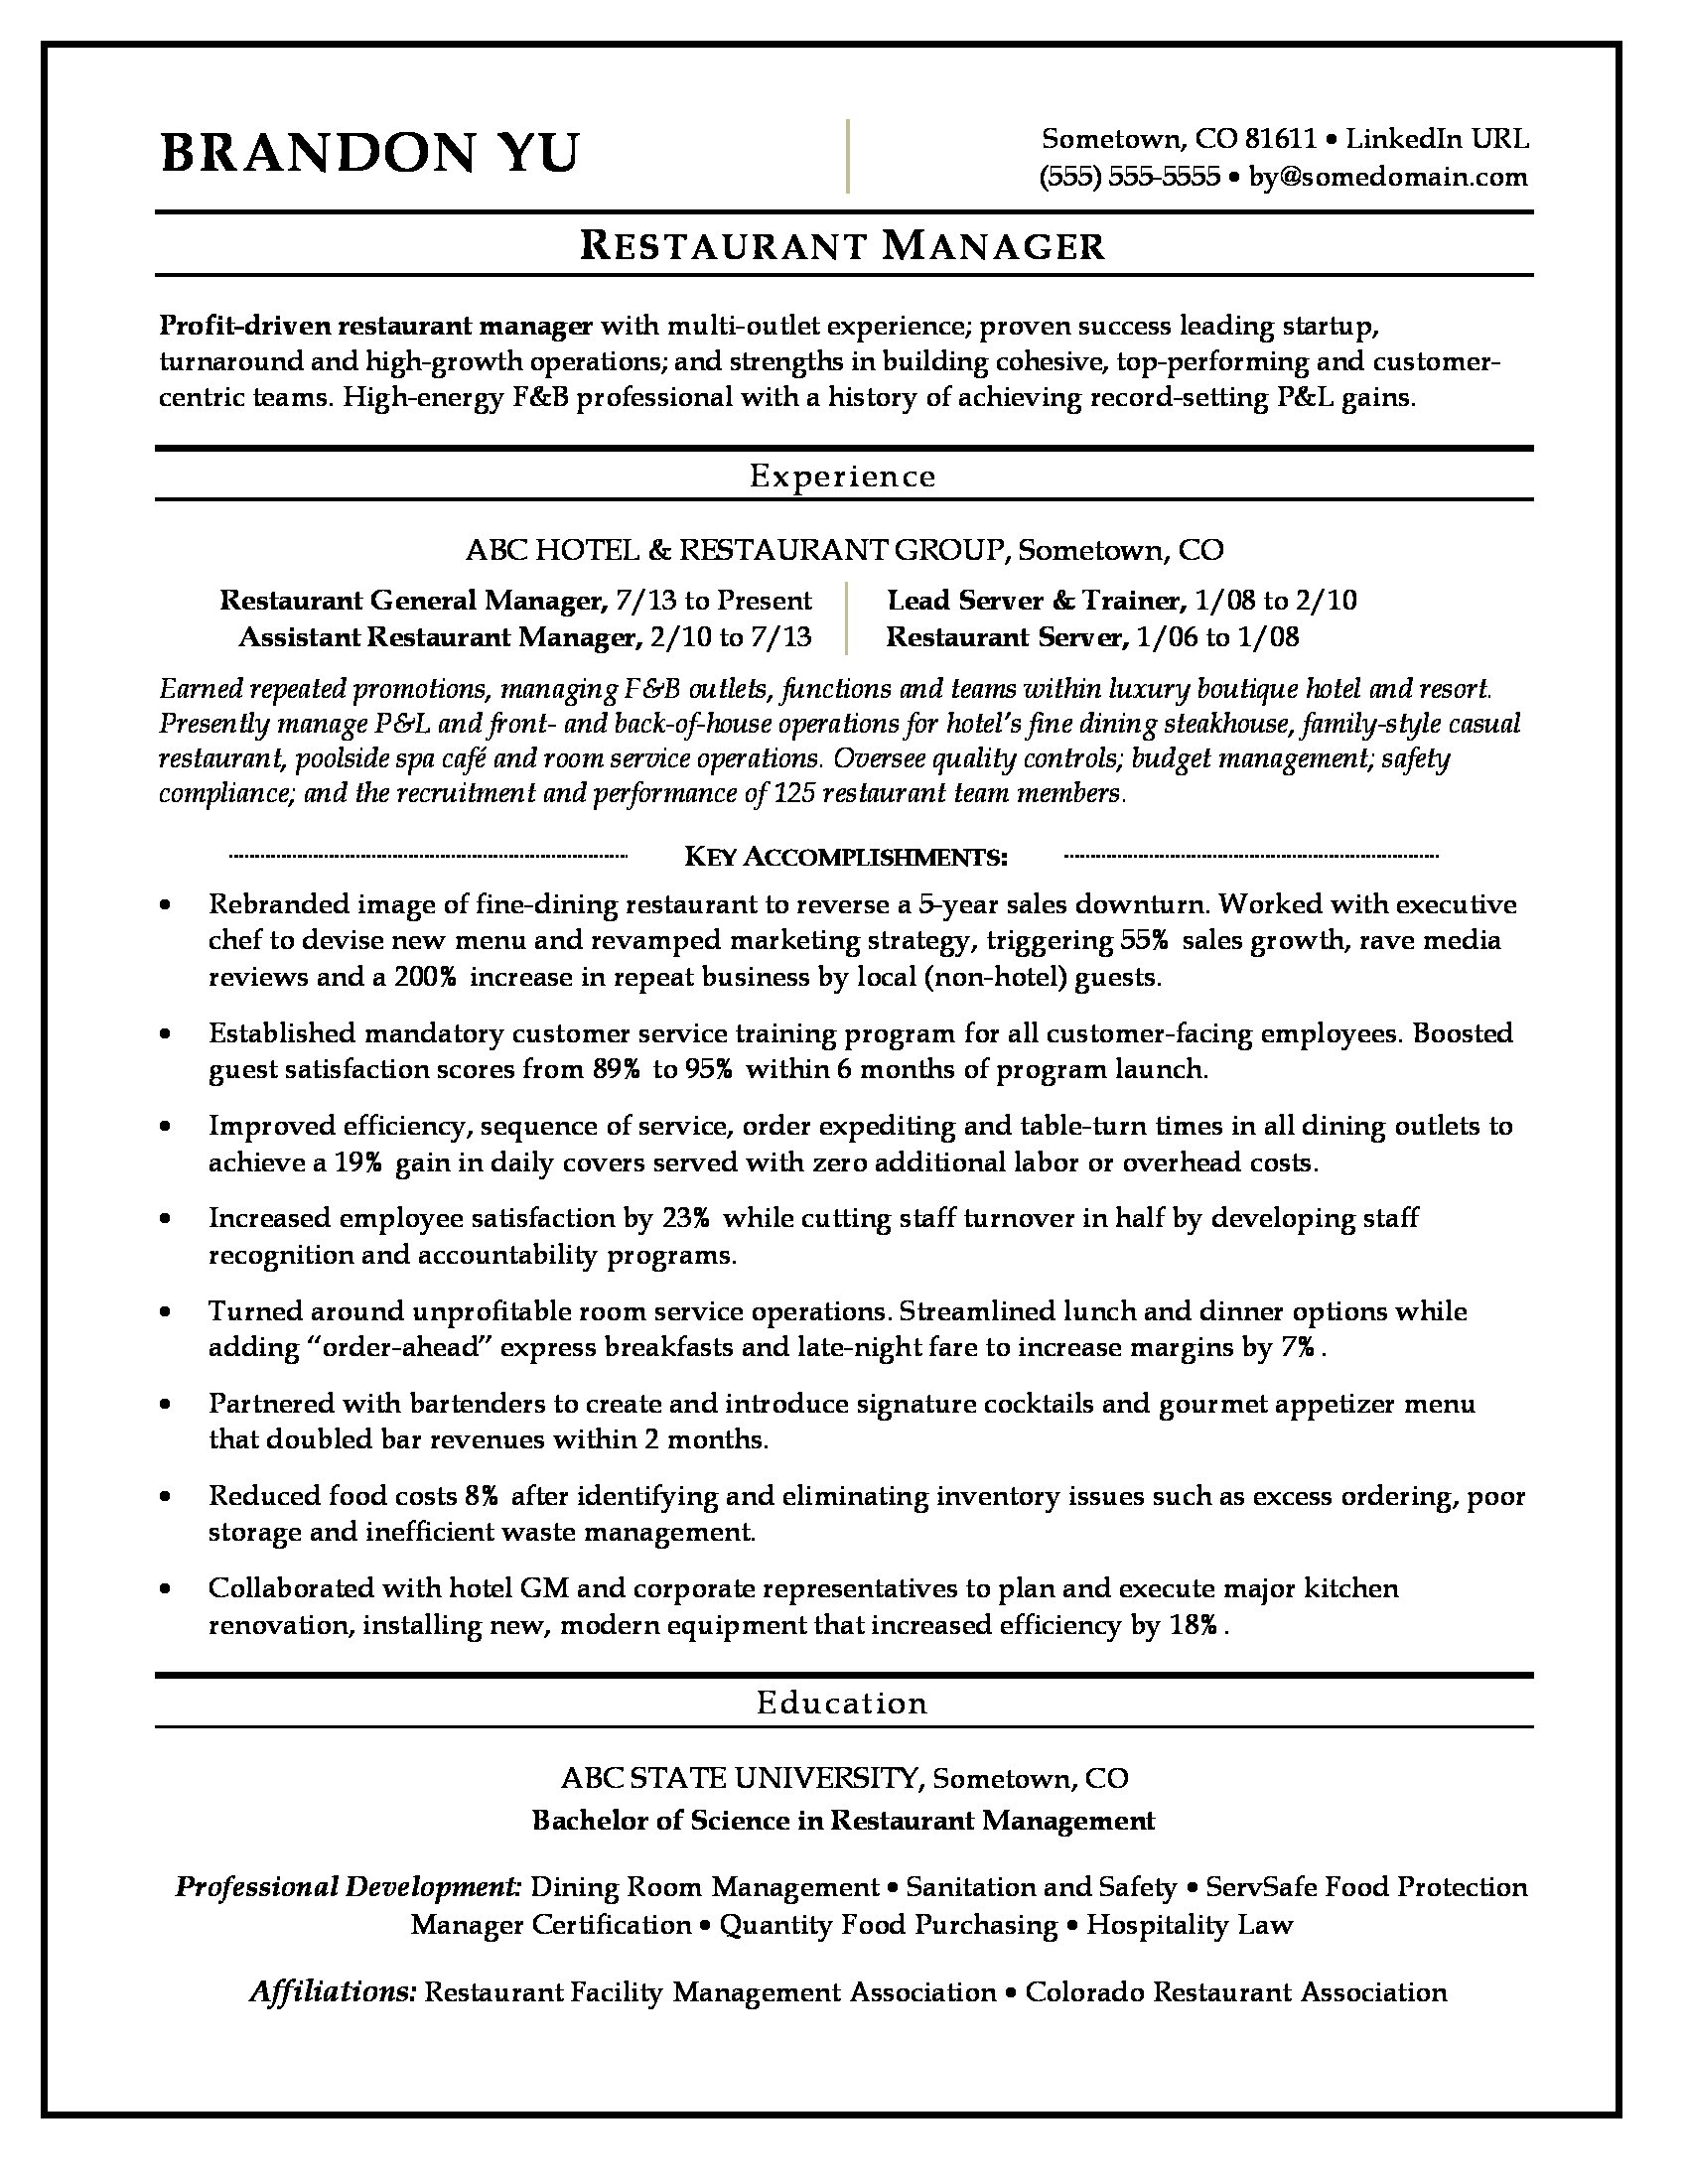 Sample Resume For A Restaurant Manager  Resume Examples For Restaurant